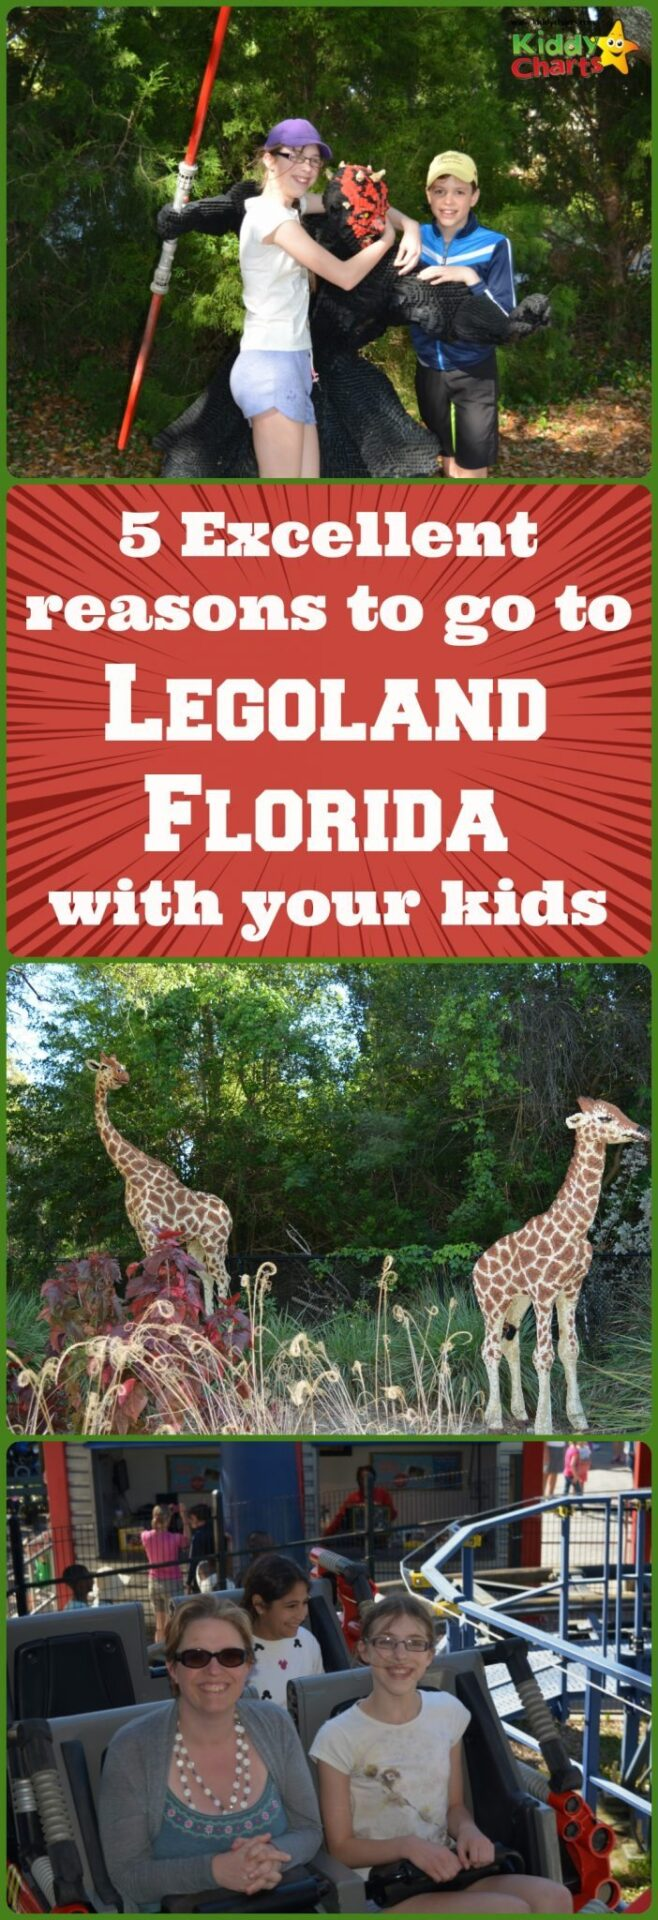 We LOVED Legoland Florida with our two children, and here are five reasons why we liked it so much. And my daughter designed this pin for you all too - she was THAT inspired by the park! ;-)